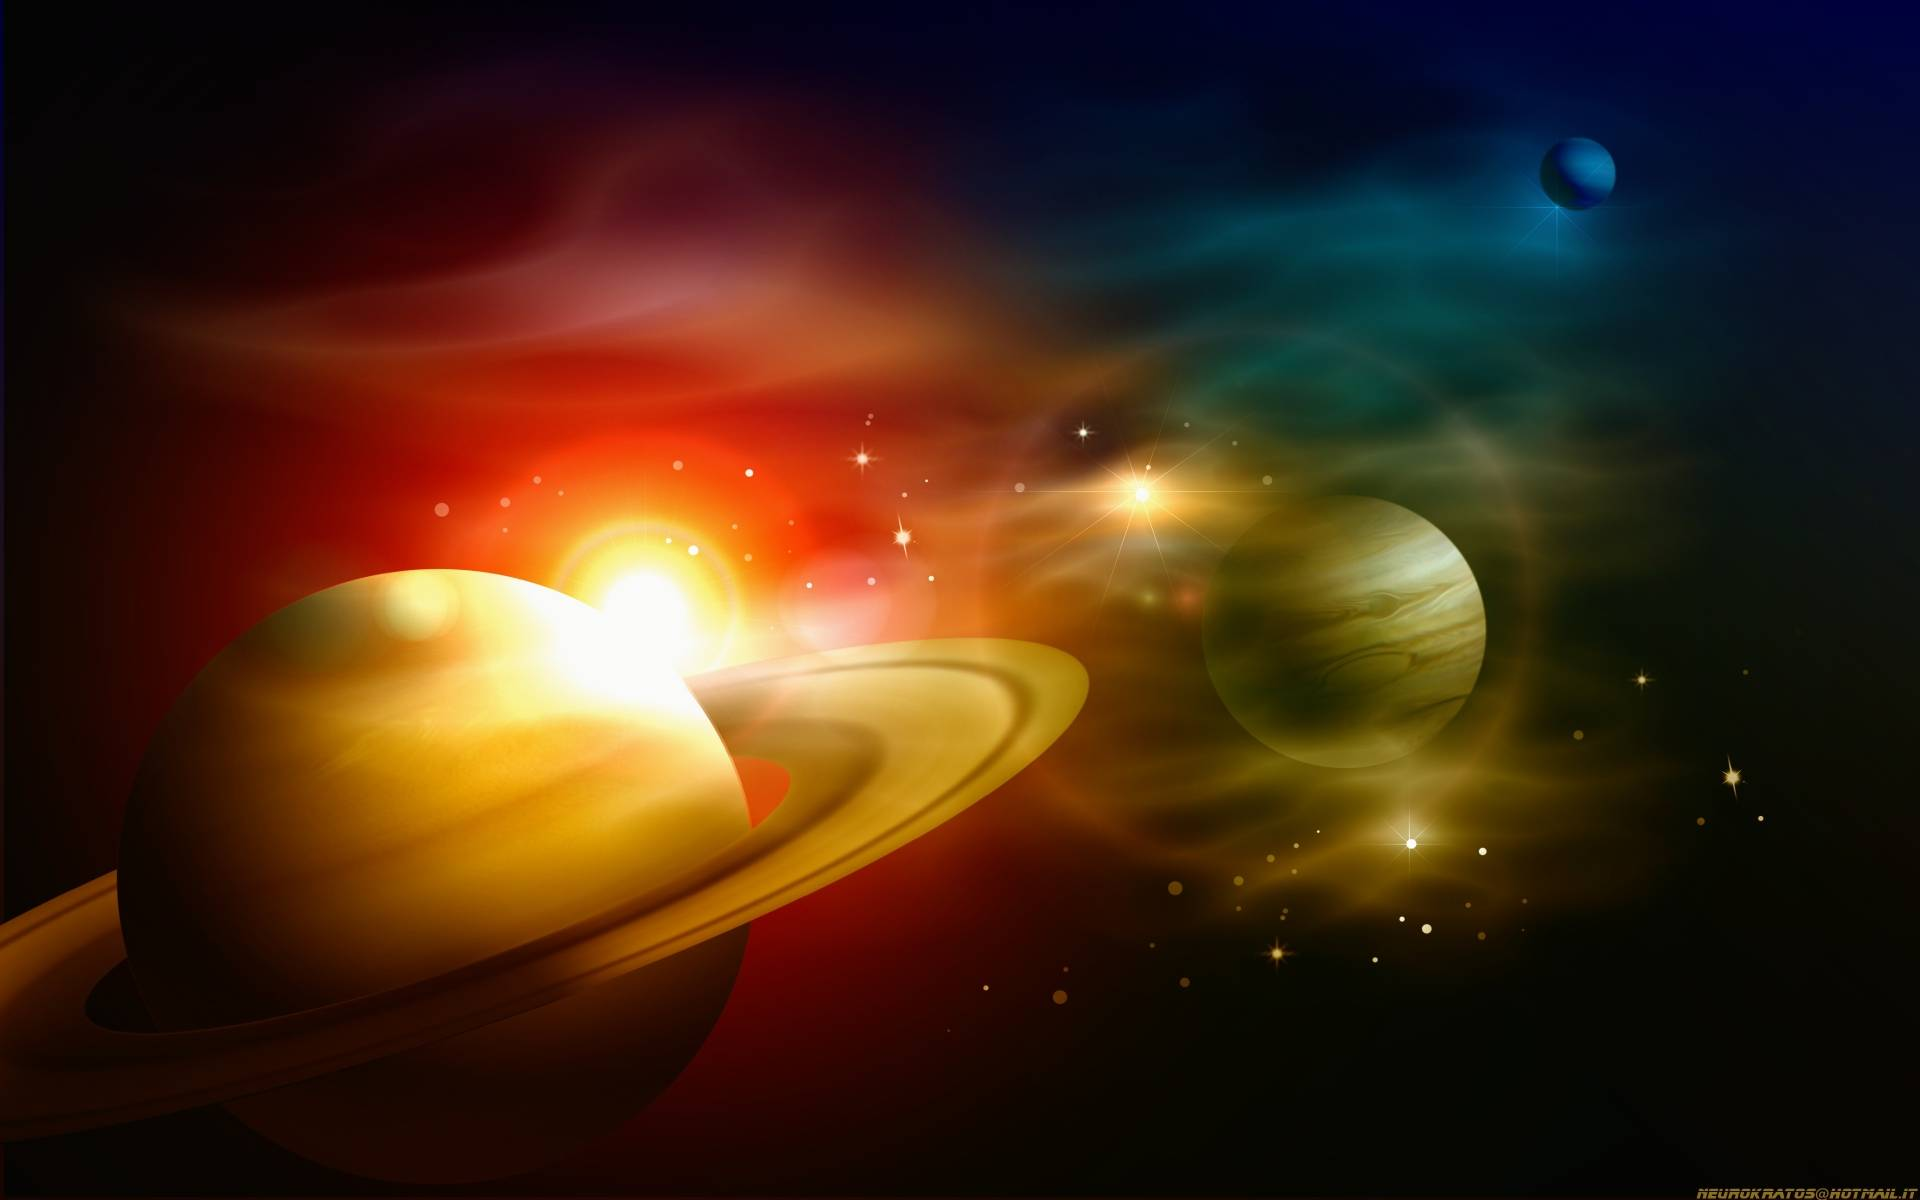 ... Space 3dspace Wallpapers For Desktop, Backgrounds, Free HD Wallpapers